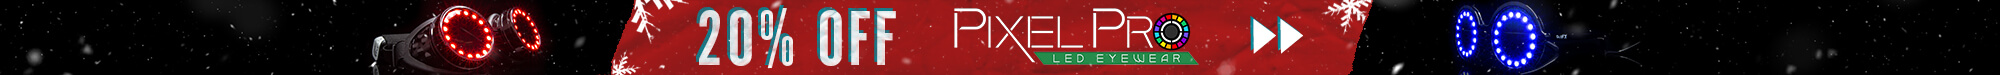 20% Off Pixel Pro Eyewear Holiday